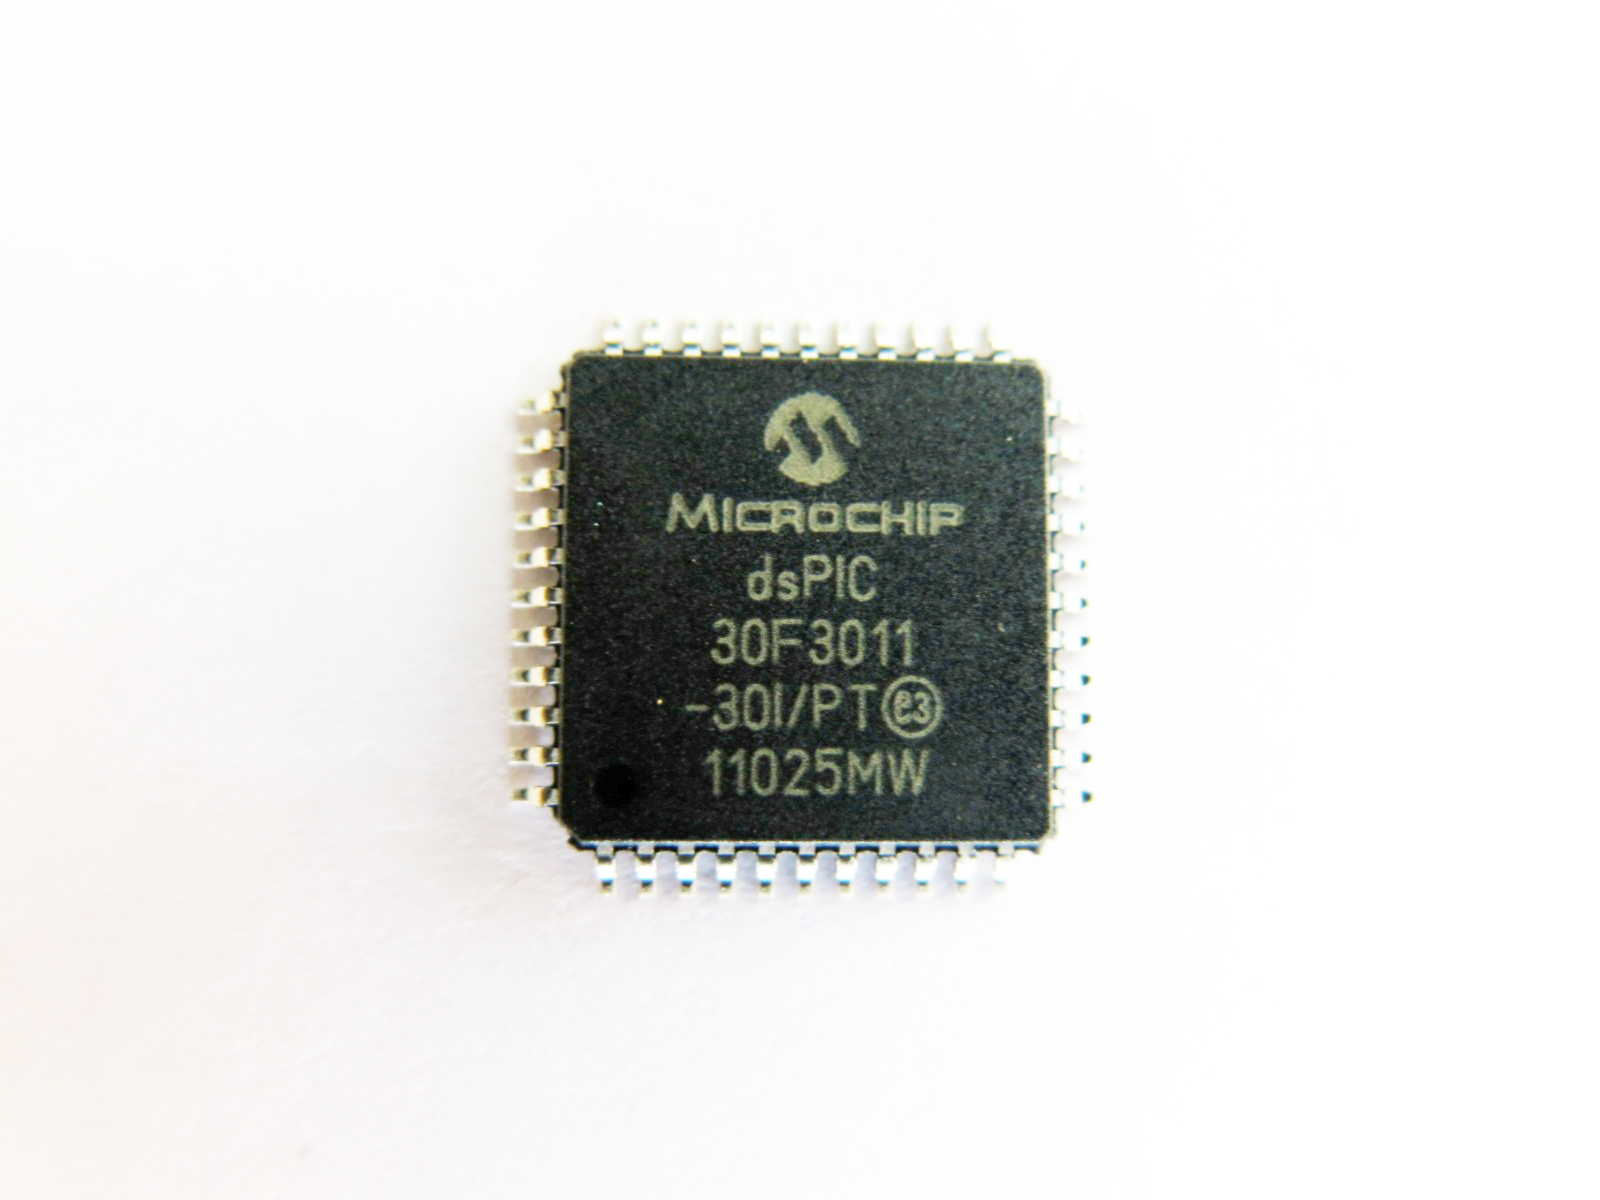 Analog To Digital Converter Using Pic16f877a Microcontroller Dspic30f3011 16 Bit Pic